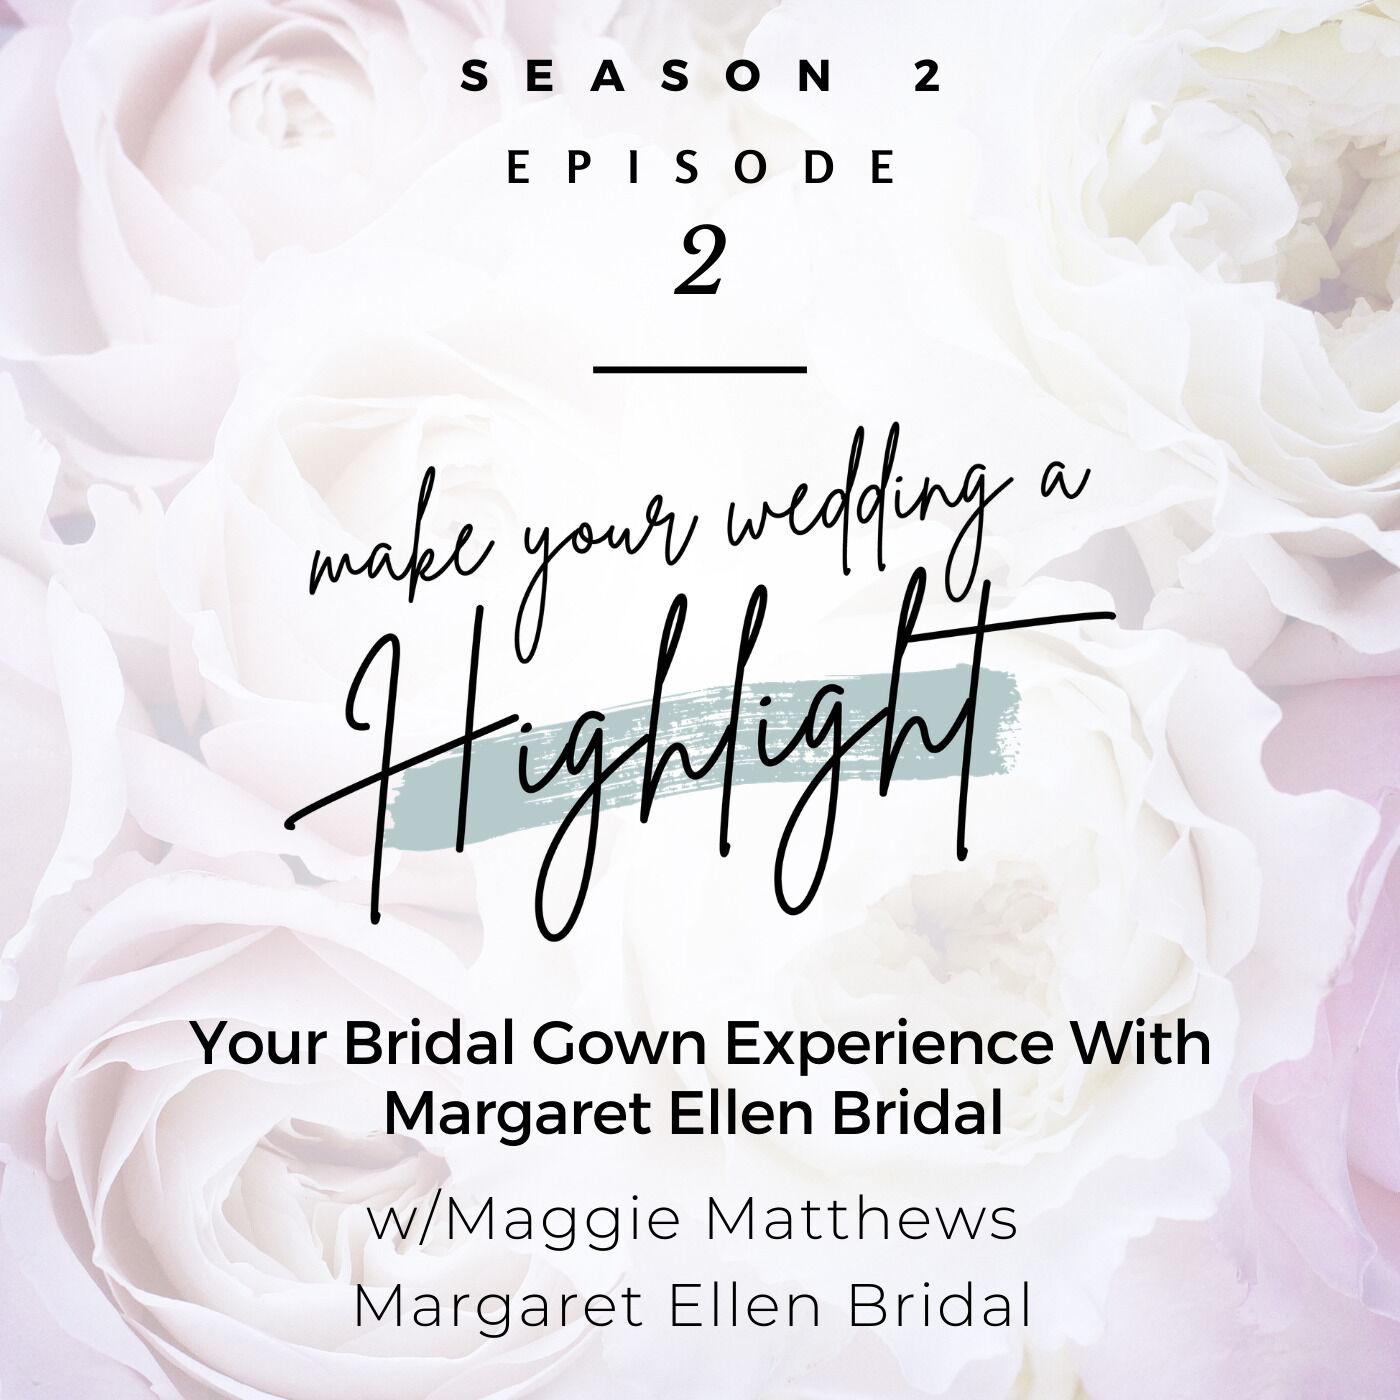 Your Bridal Gown Experience With Margaret Ellen Bridal